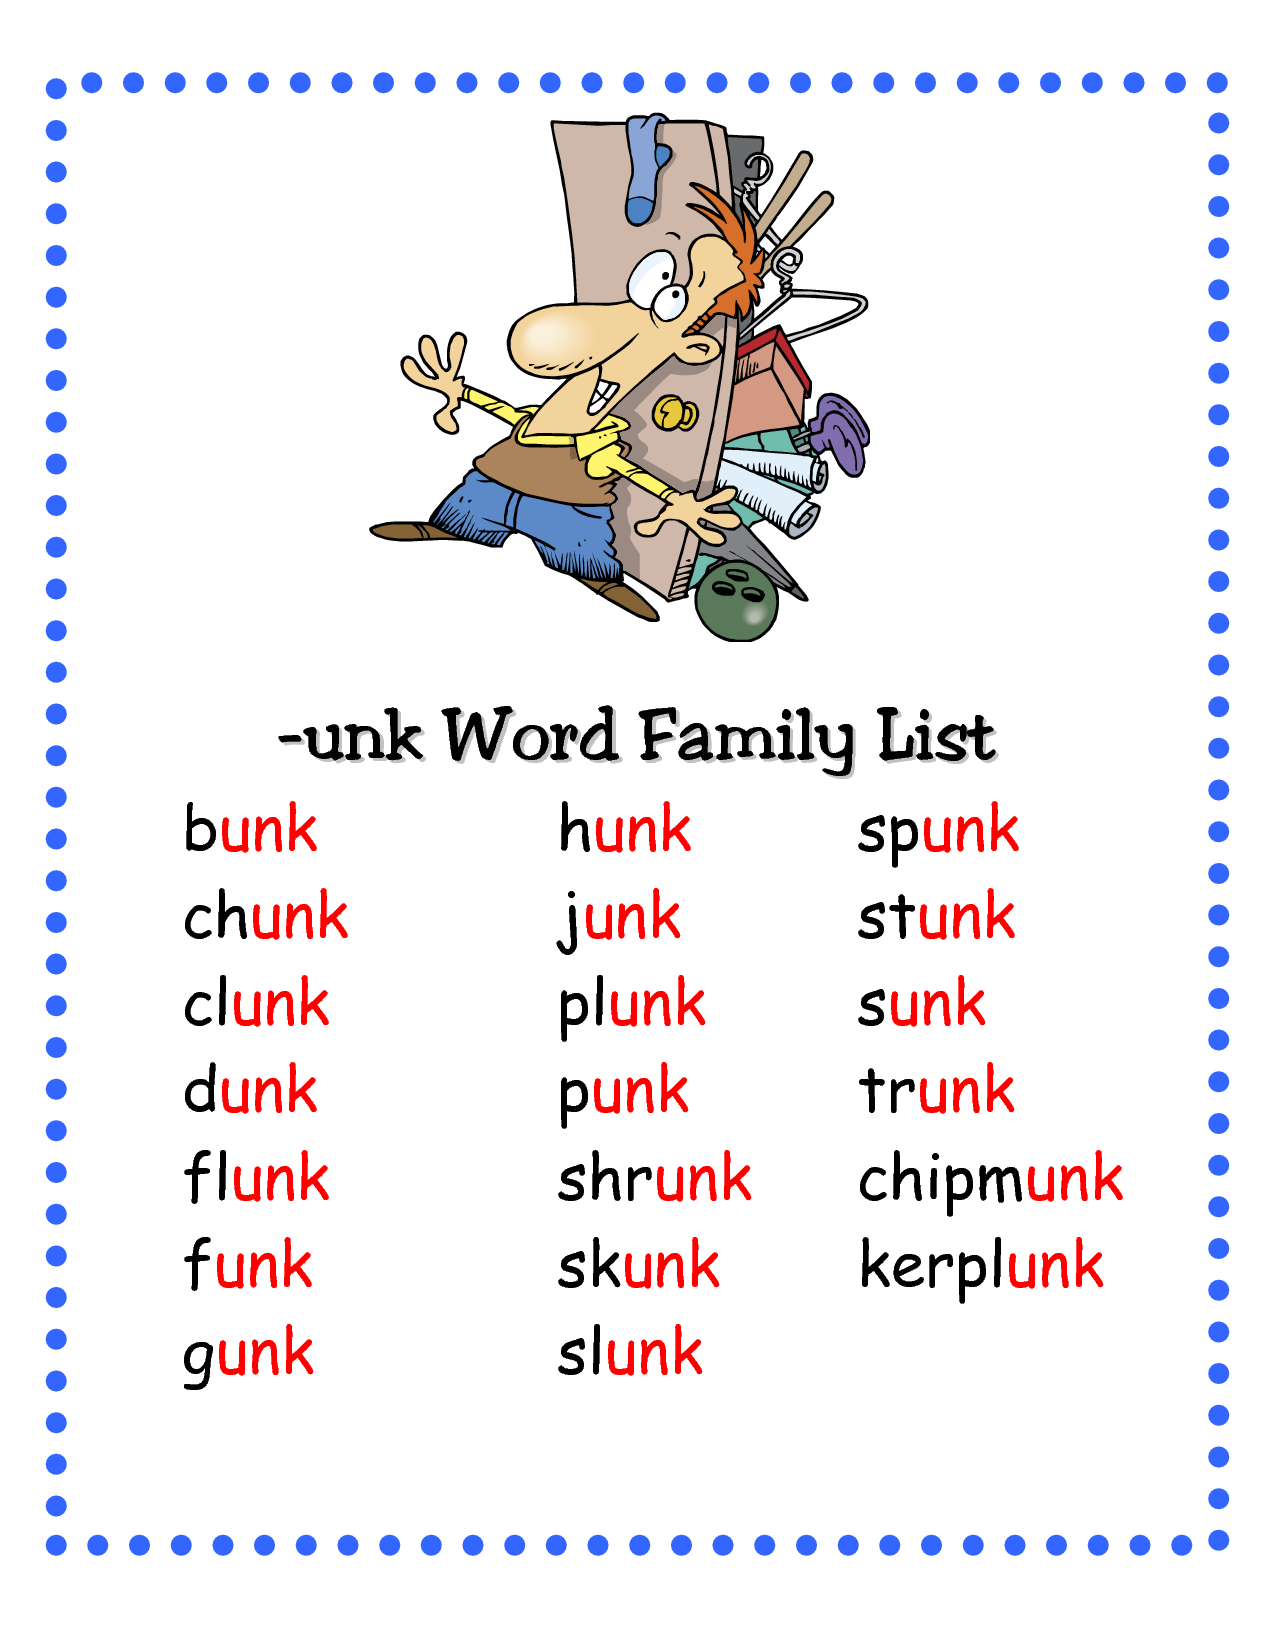 Unk Word Family List